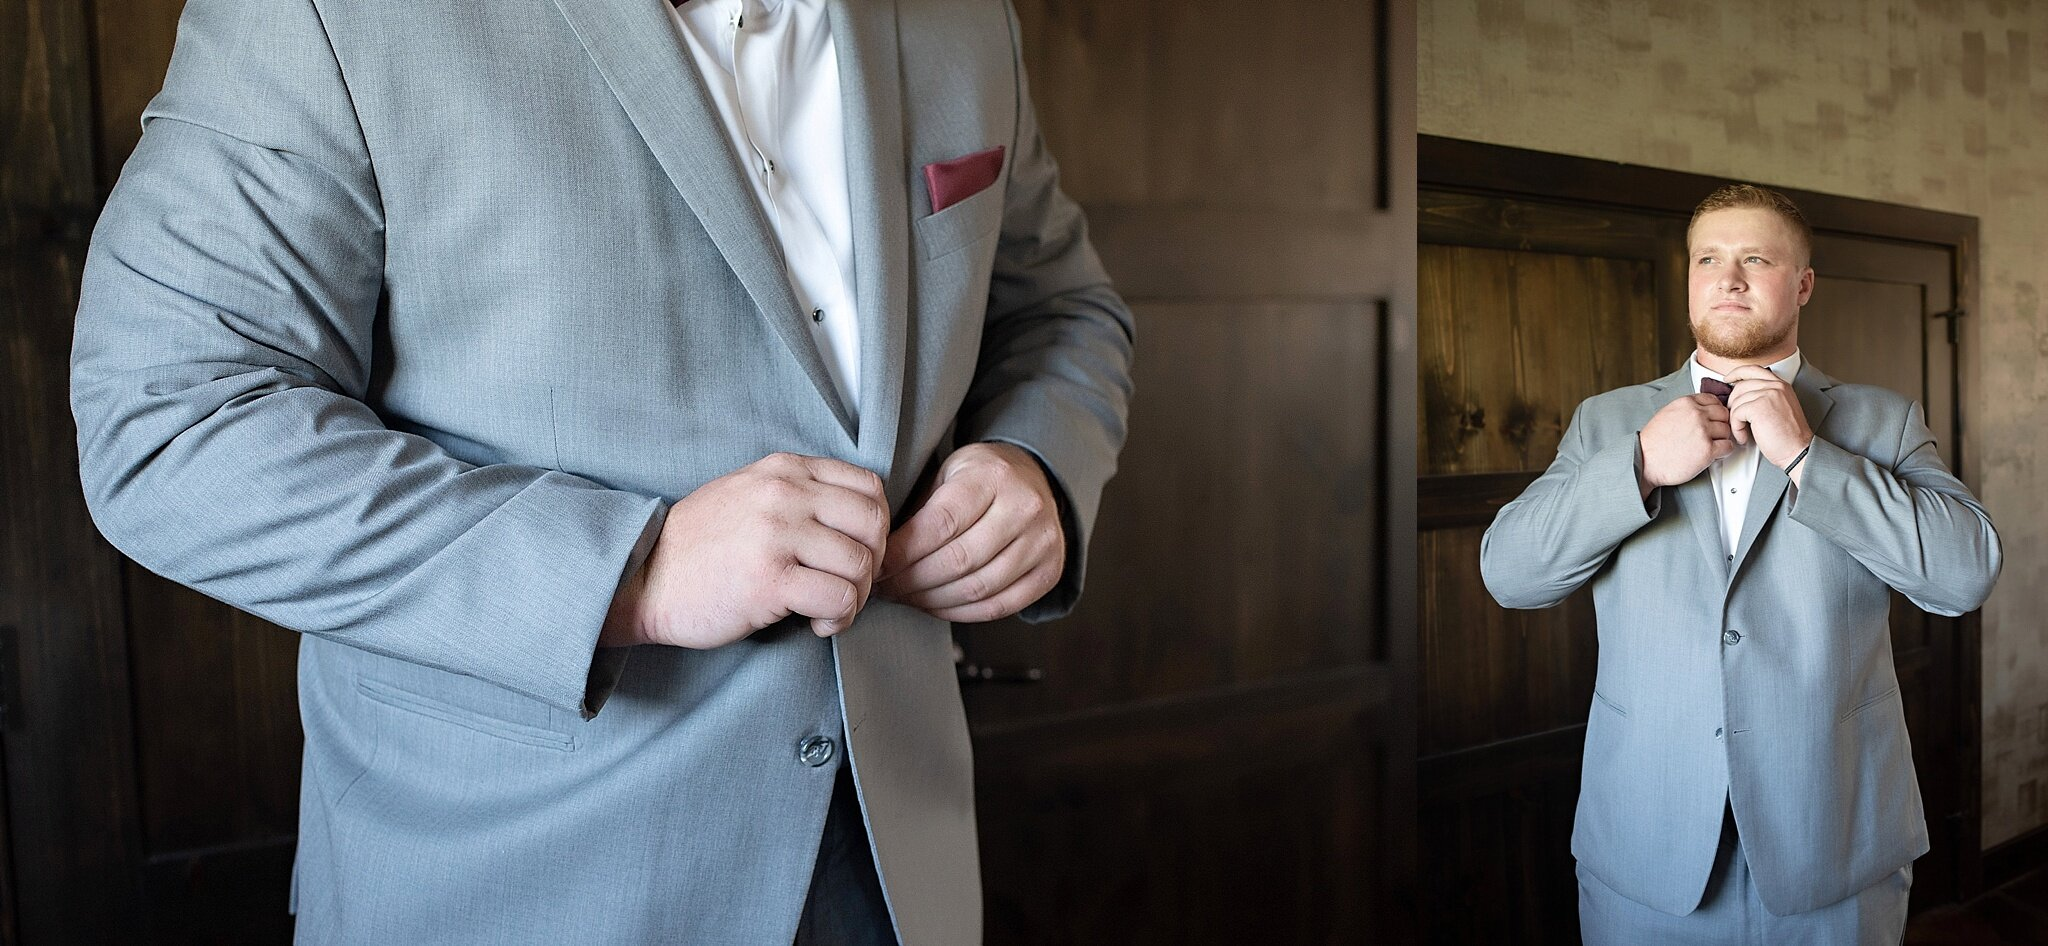 groom buttons gray suit with burgundy bow tie and pocket square